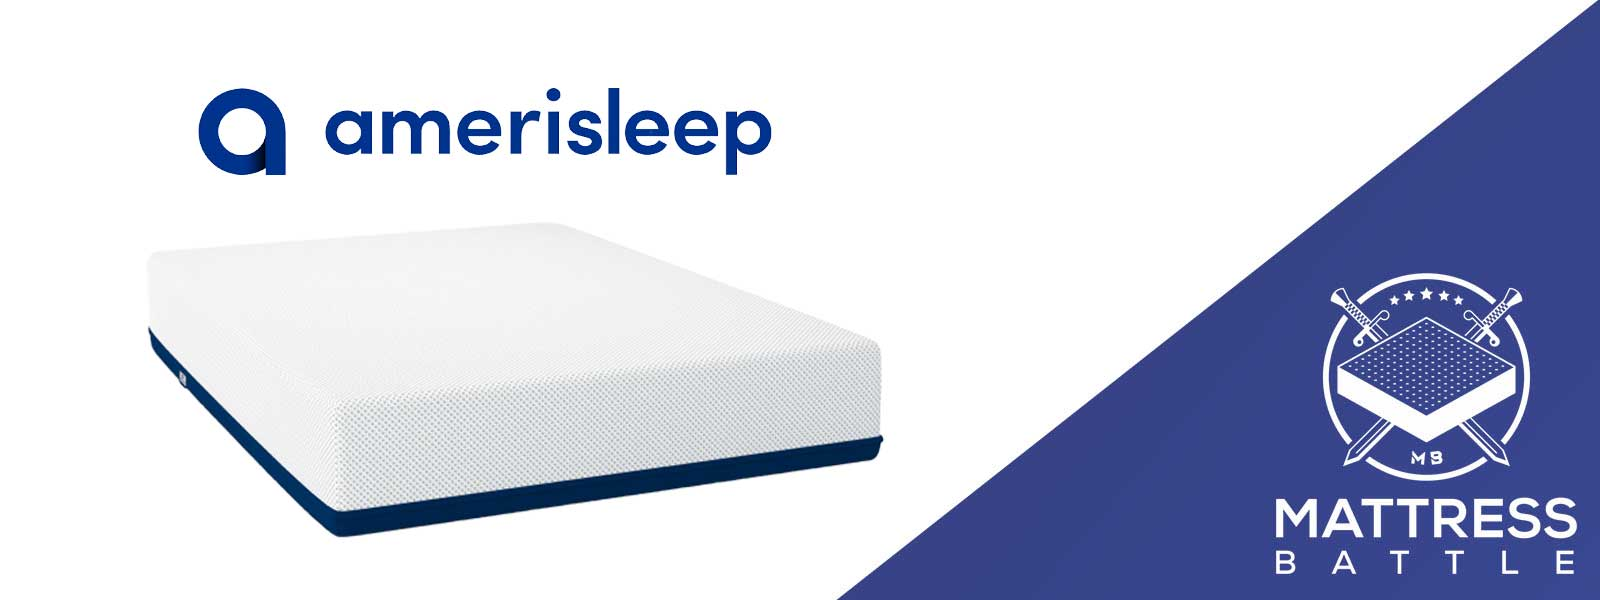 Amerisleep Reviews